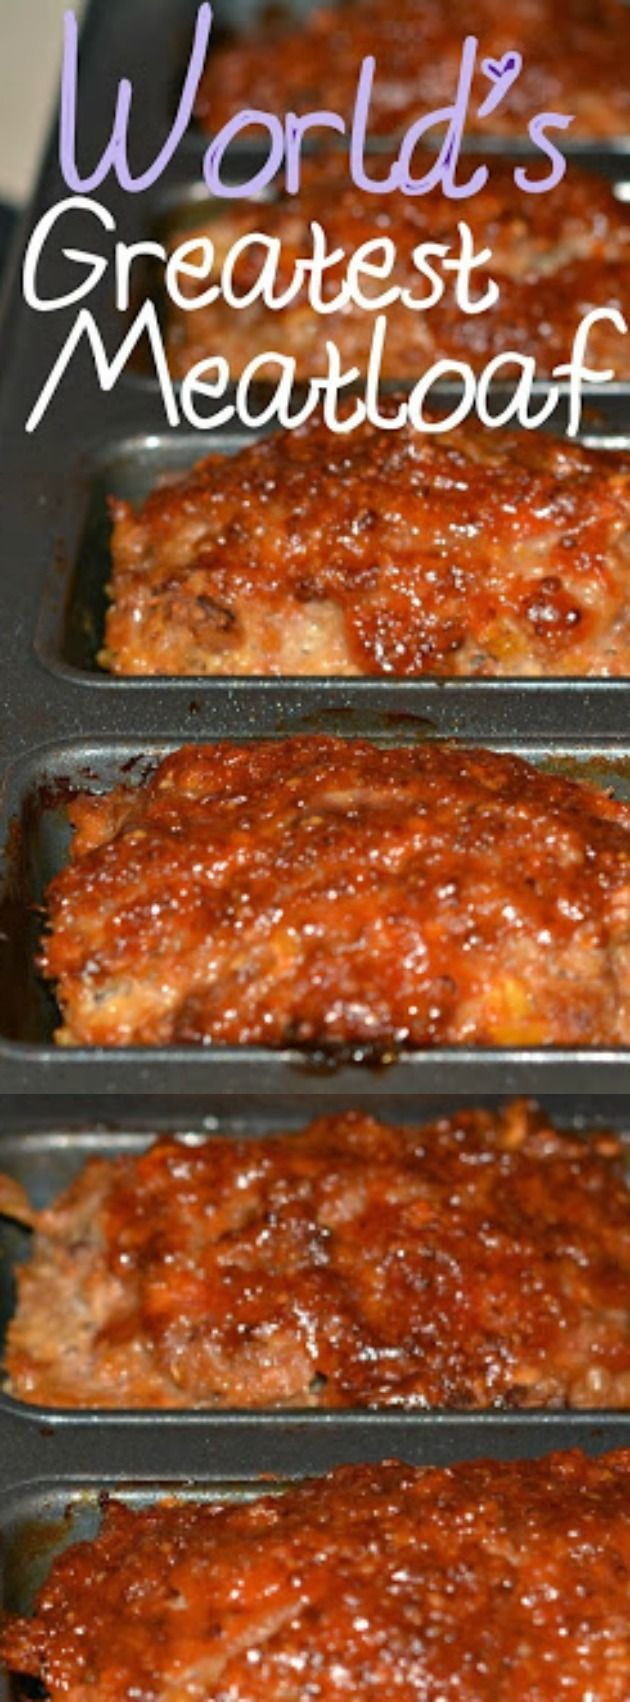 The Best Meatloaf Recipes - The Best Blog Recipes